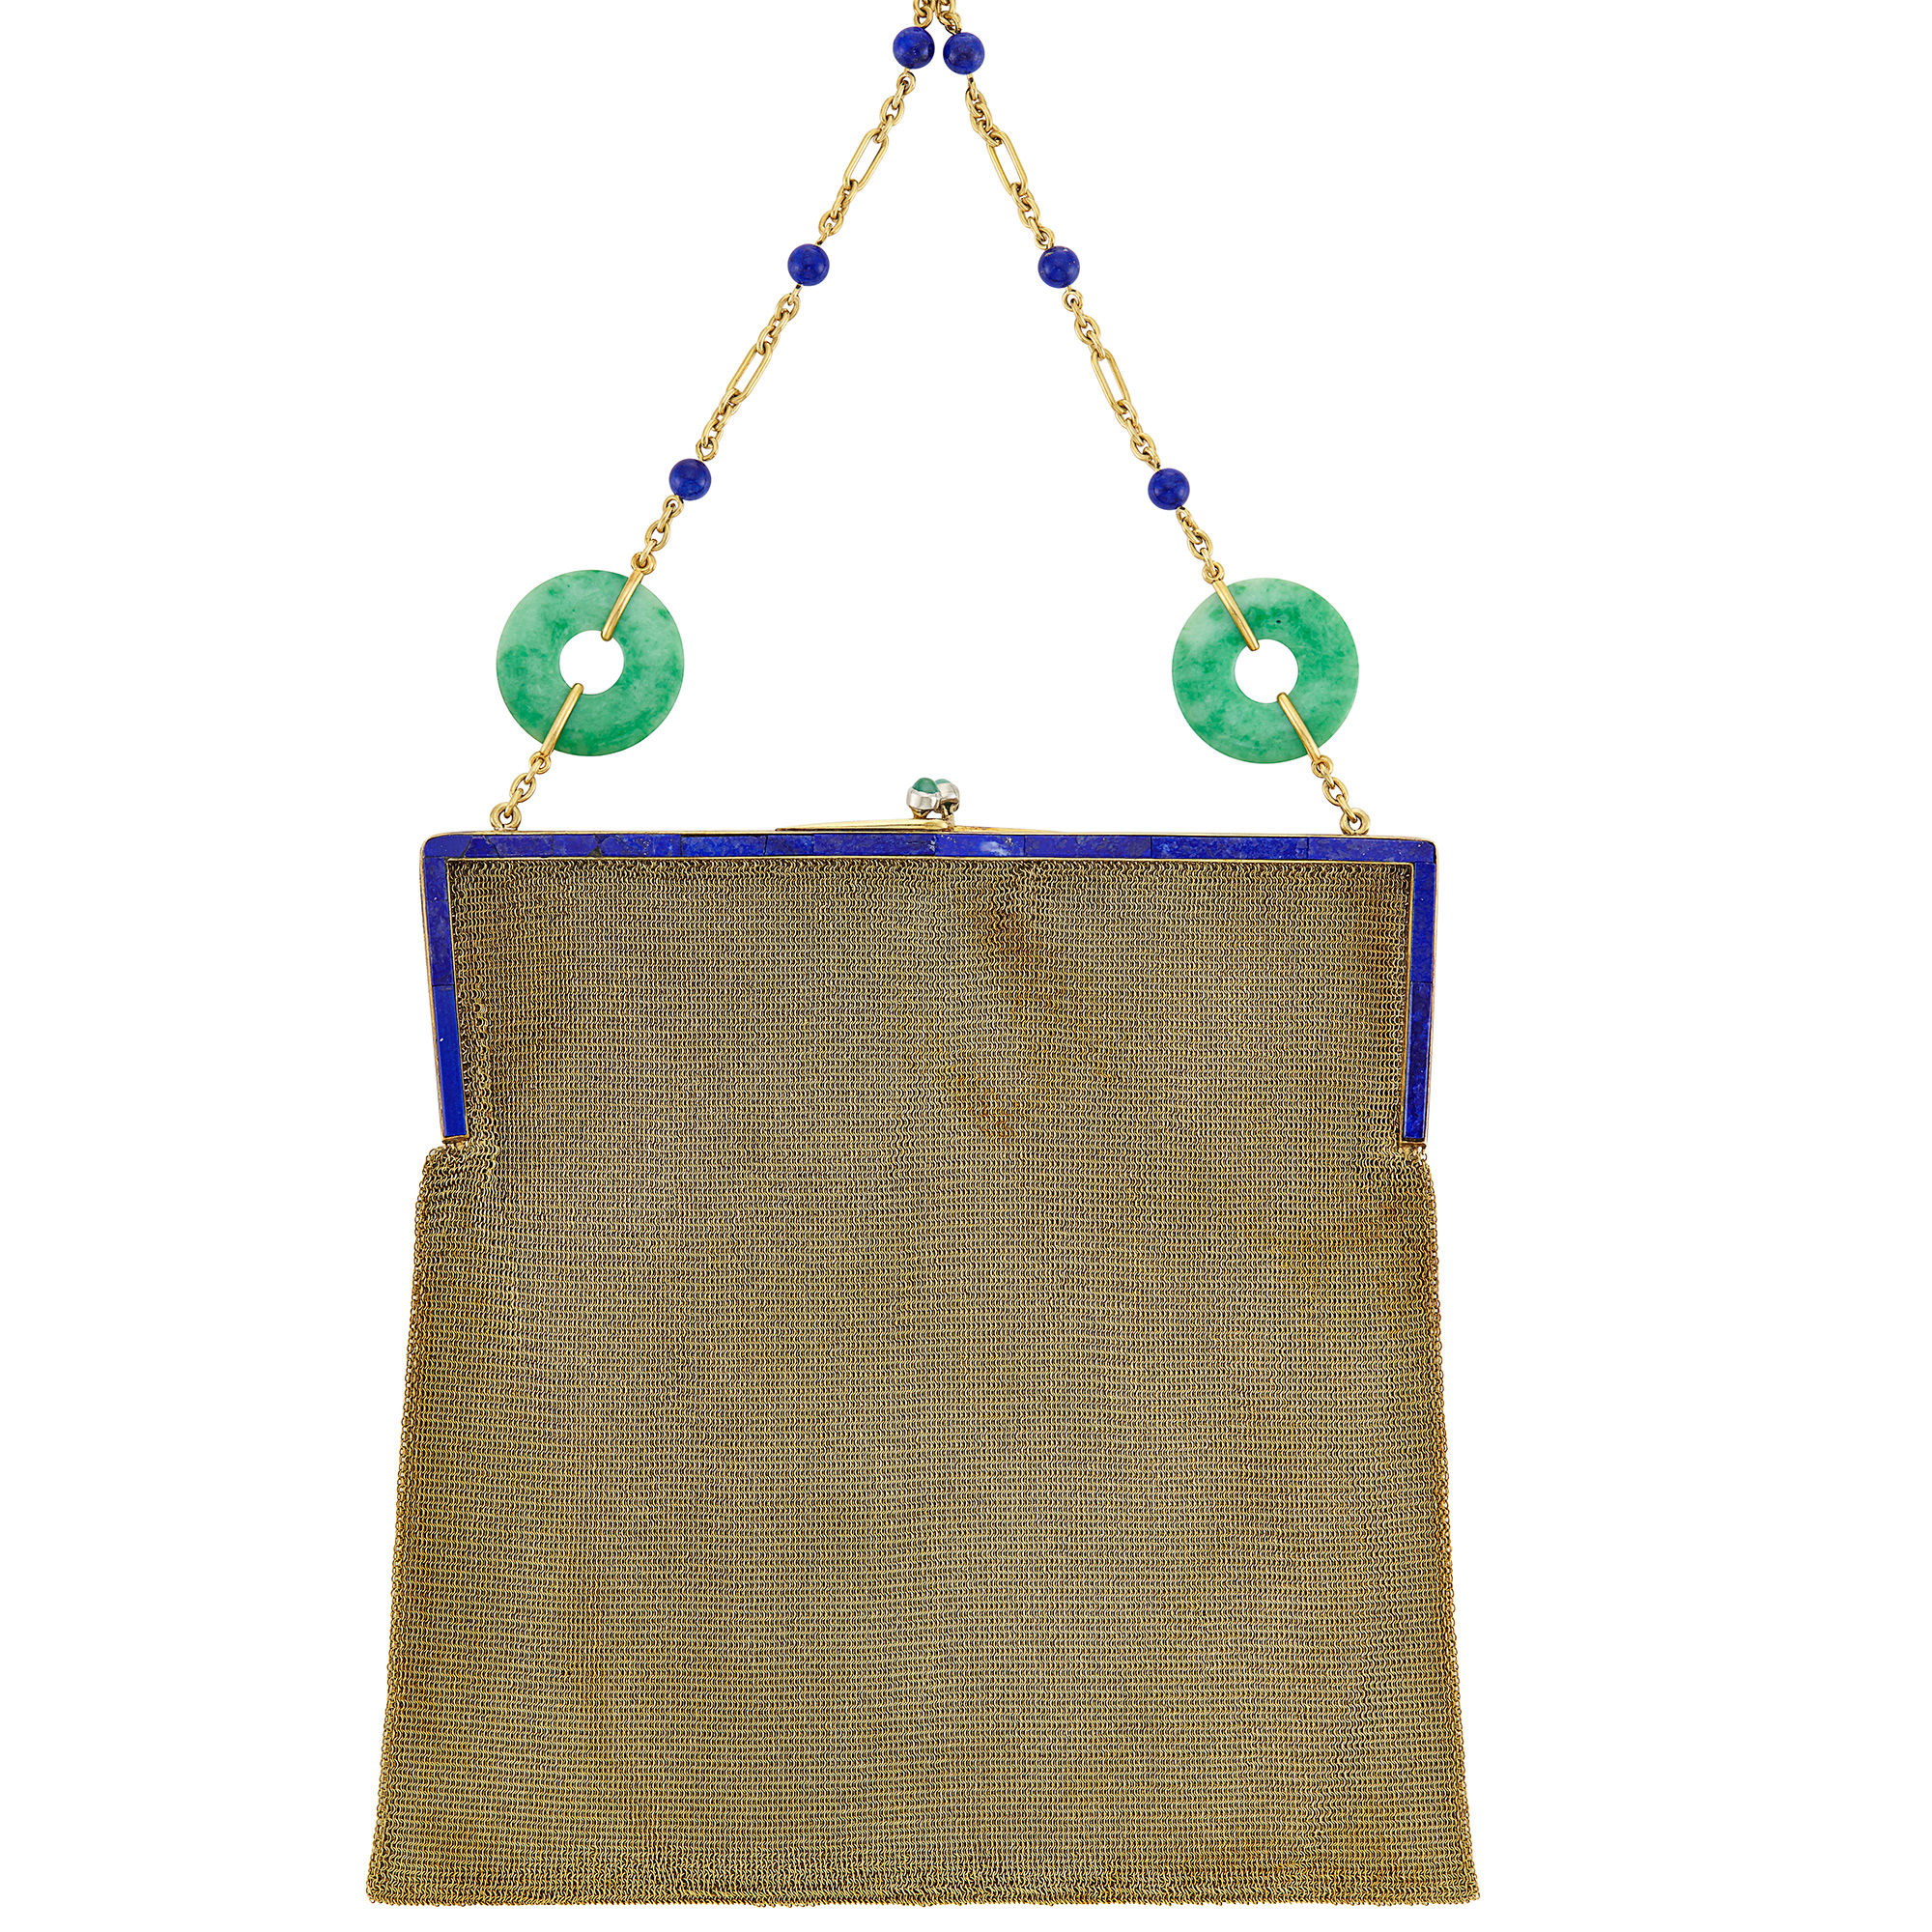 Lot image - Gold, Platinum, Lapis and Cabochon Emerald Mesh Purse with Gold, Jade and Lapis Bead Carrying Chain